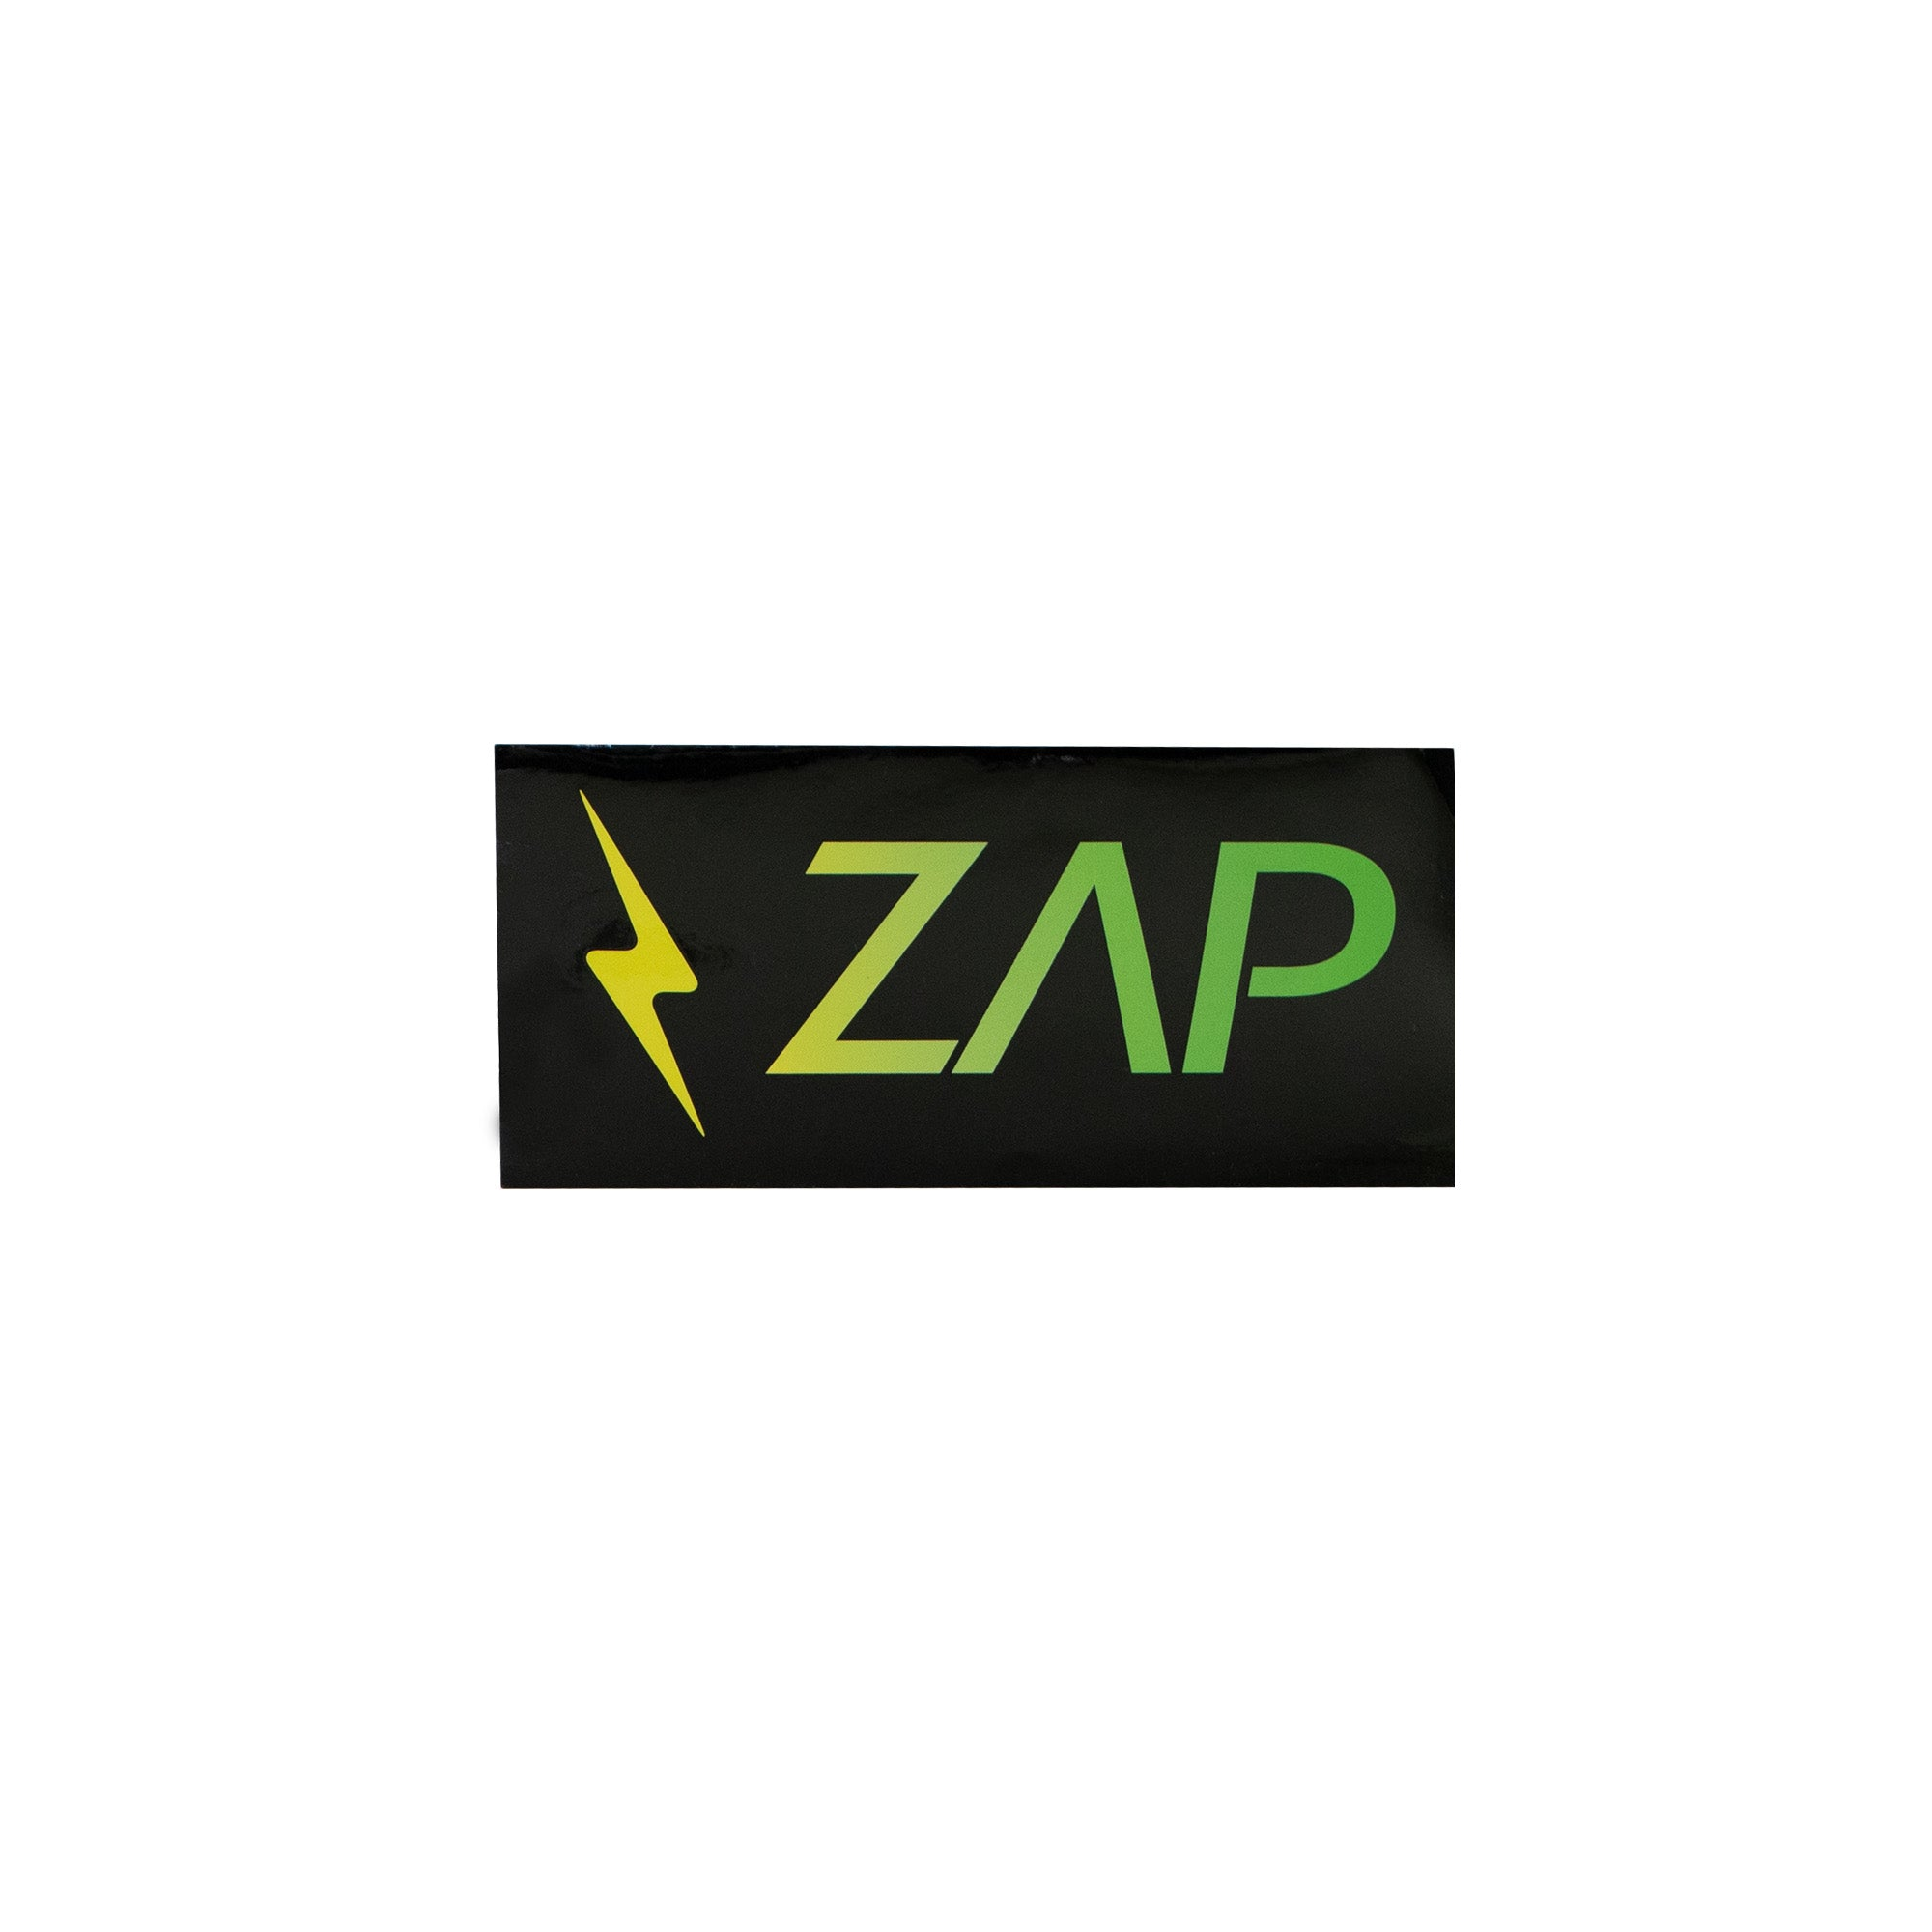 Zap Stickers